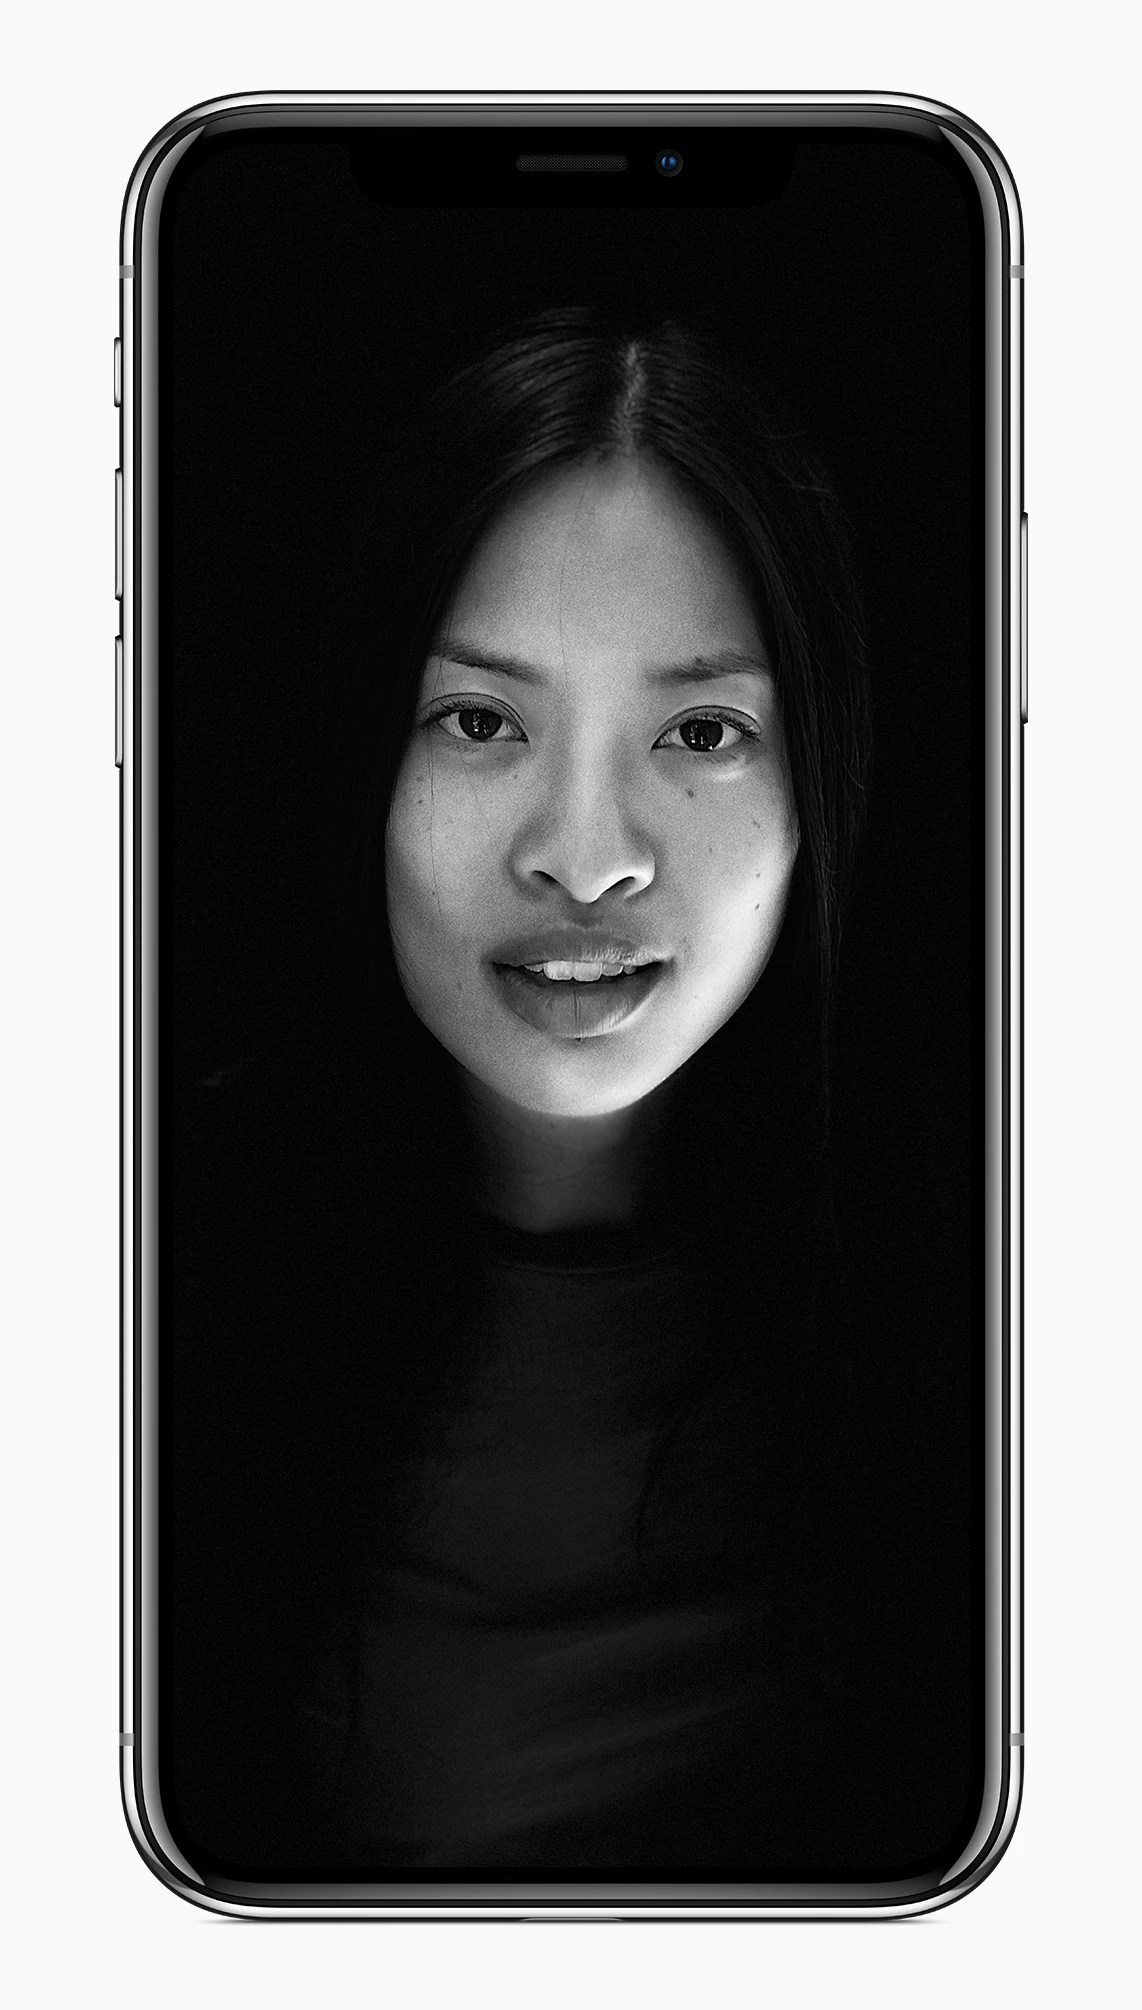 Portrait Lighting Effects Iphone 7 Plus